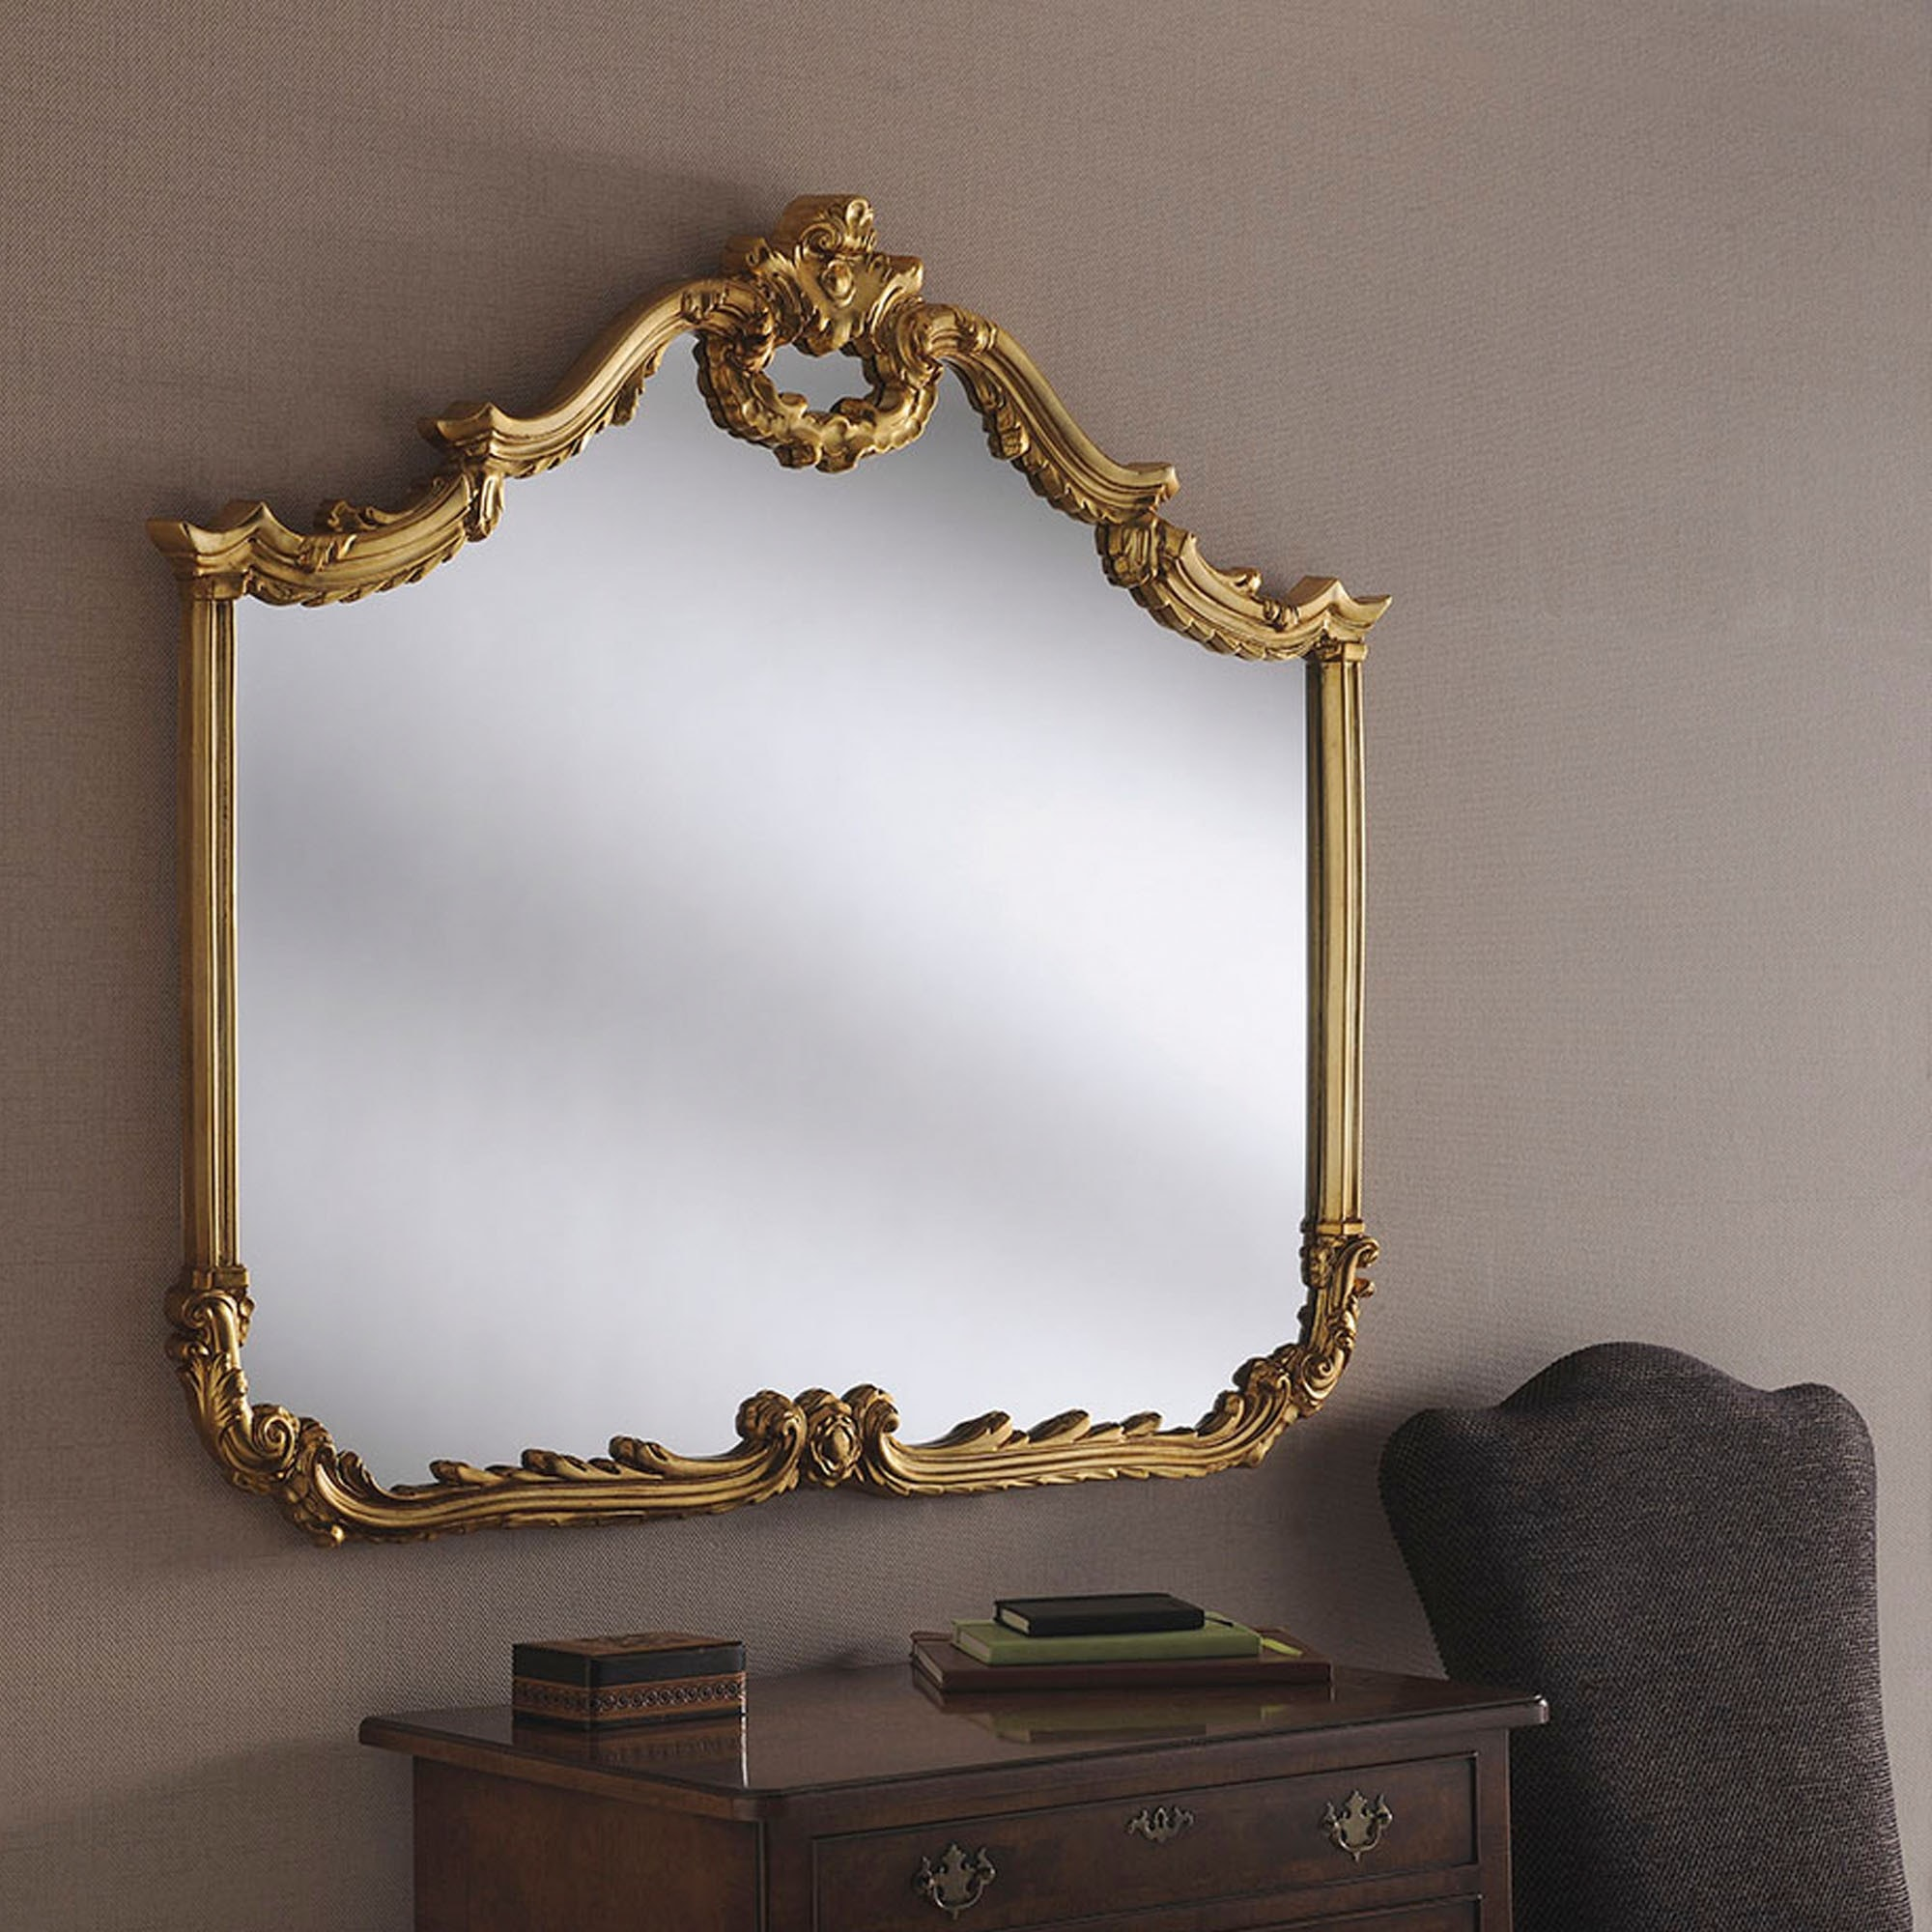 Gold Ornate Overmantle Mirror Gold Overmantle Mirror